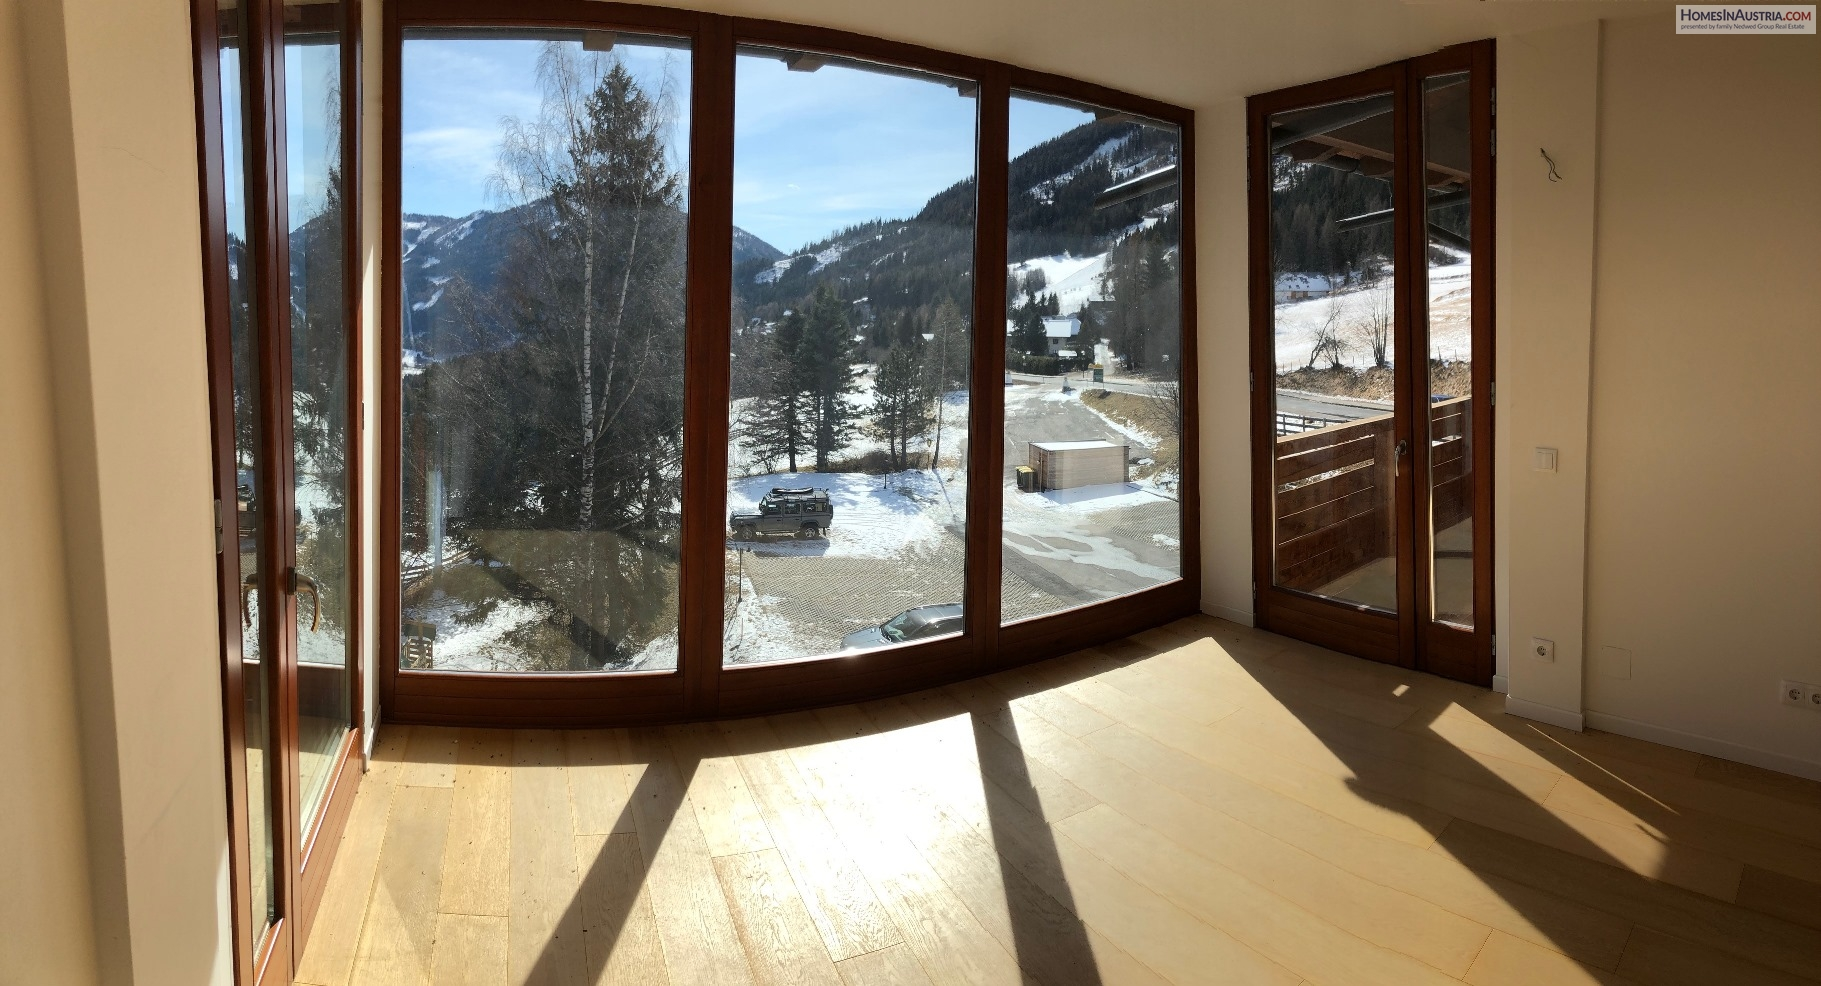 Bad Kleinkirchheim, Carinthia, Apartment (SCHNEE 2) area of St Oswald, 3 bedrooms 2 baths, large Balcony